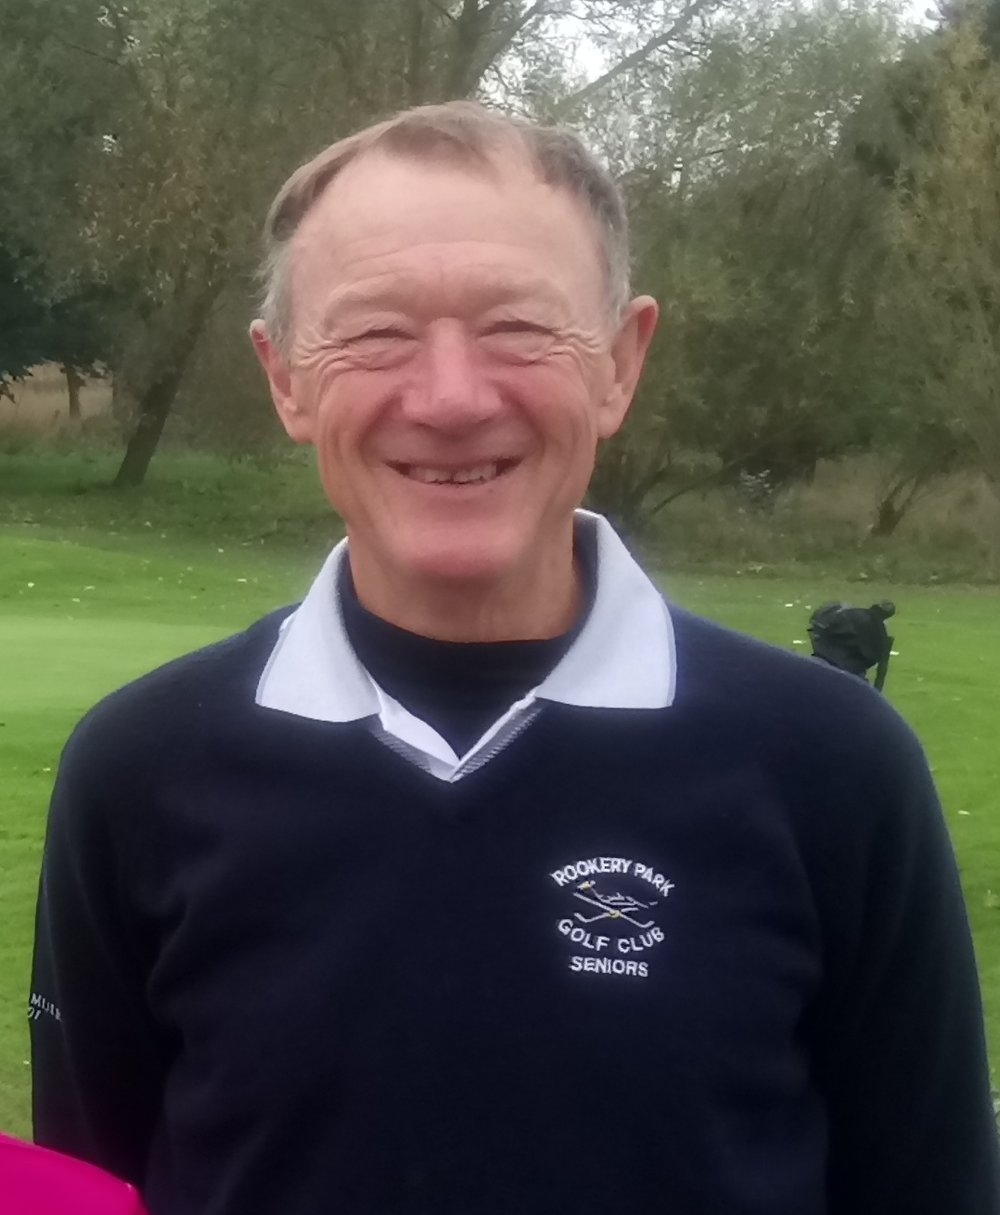 Steve Newman: Who along with Colin Burn, scored 50 Pts in the Seniors November 4BBB